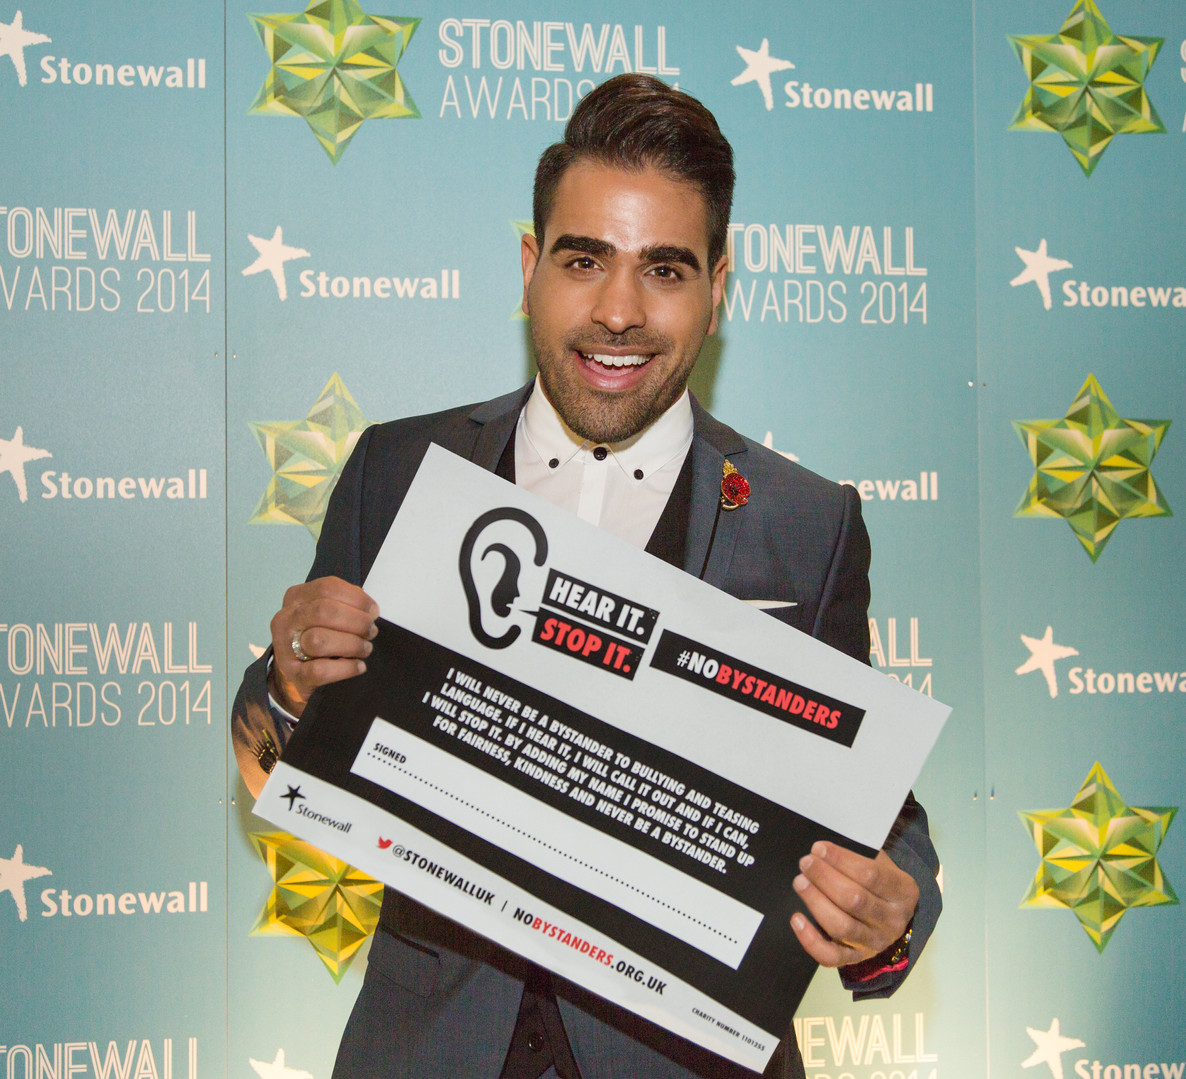 Stonewall awards 2014